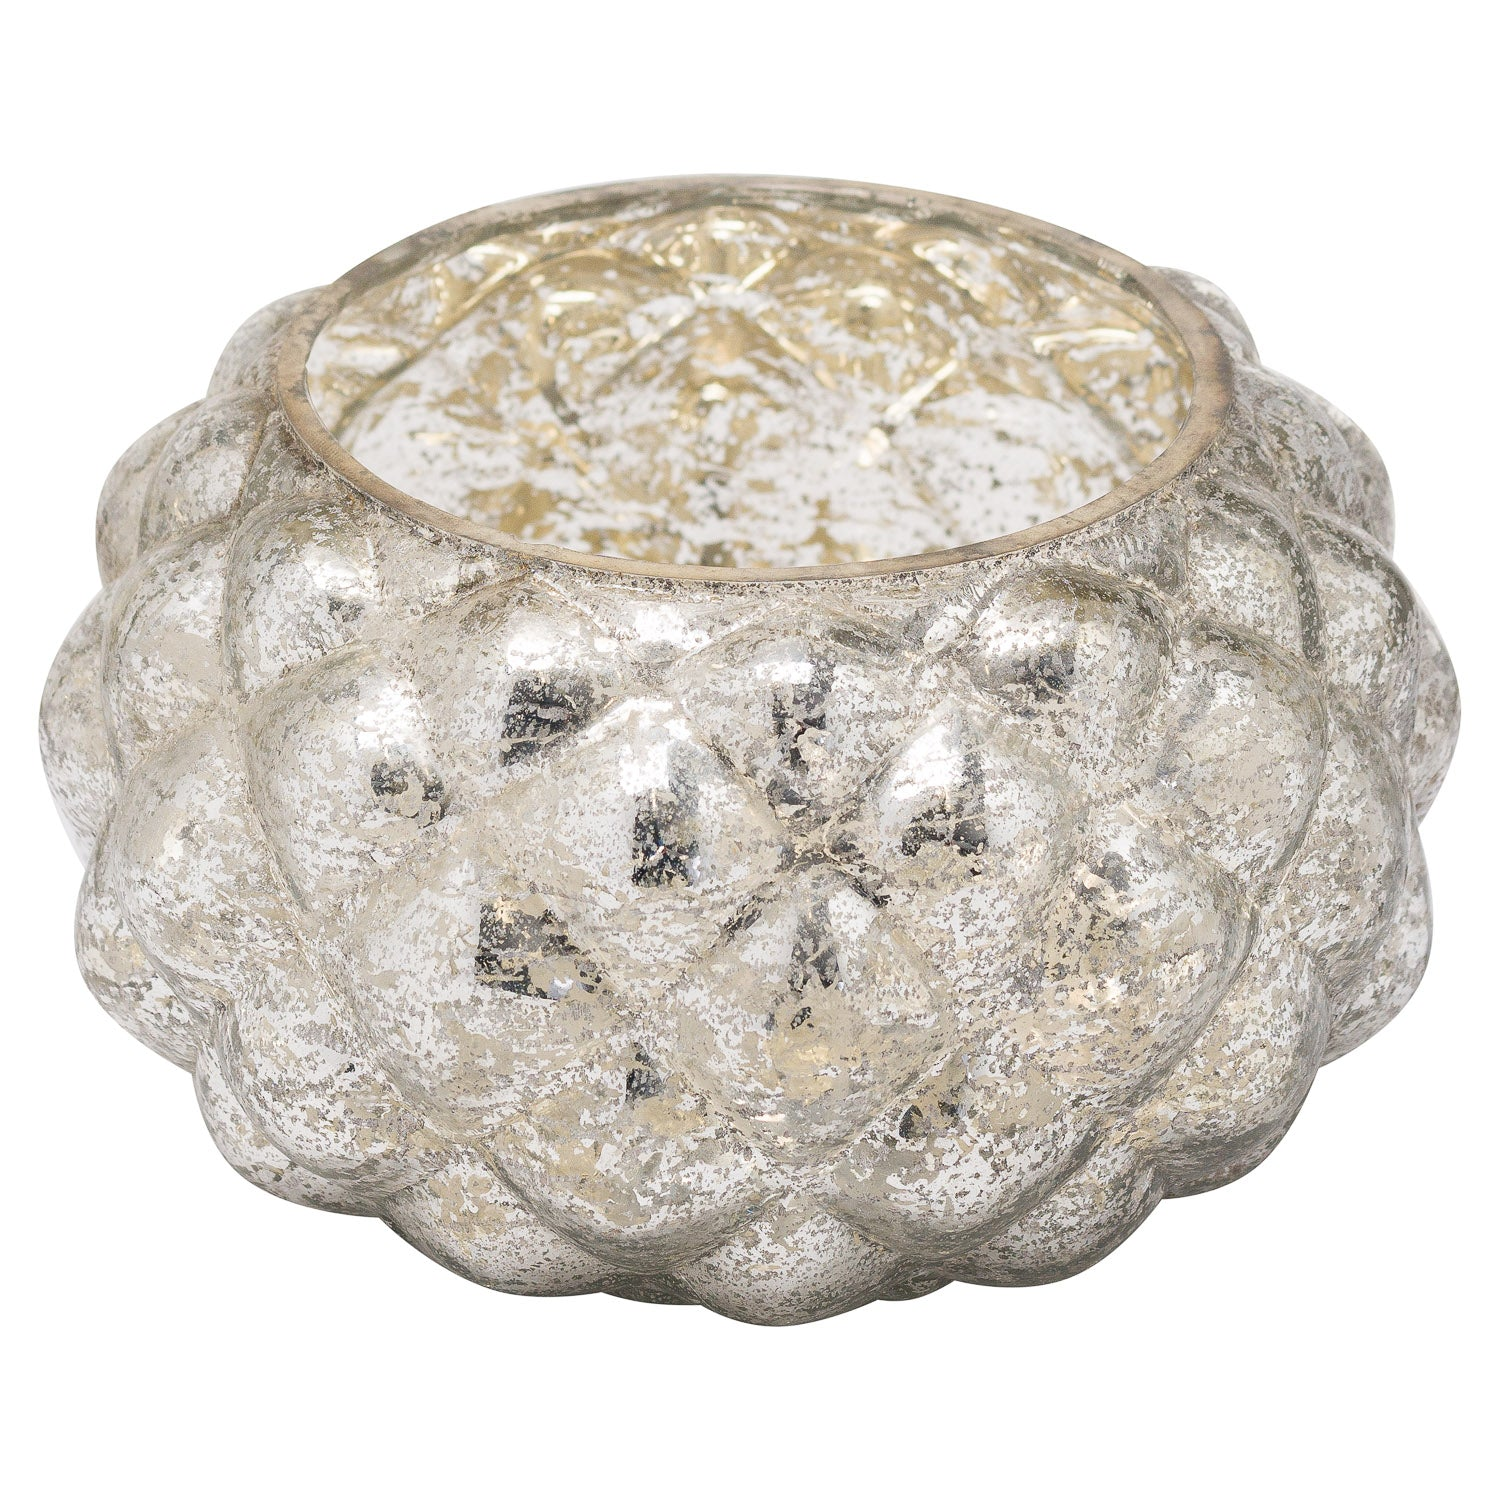 The Noel Collection Small Mercury Votive Candle Holder